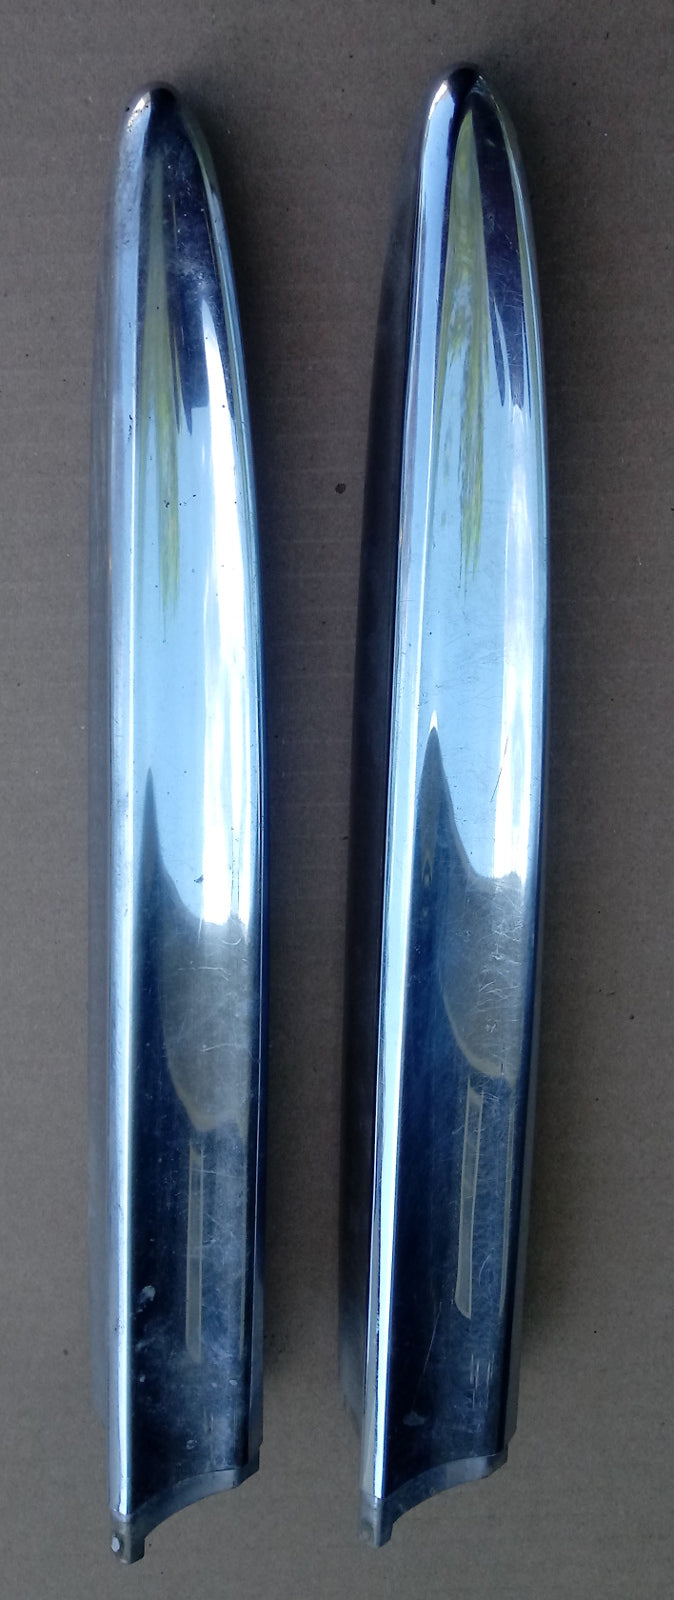 1957 Chevrolet 210 side trim bars